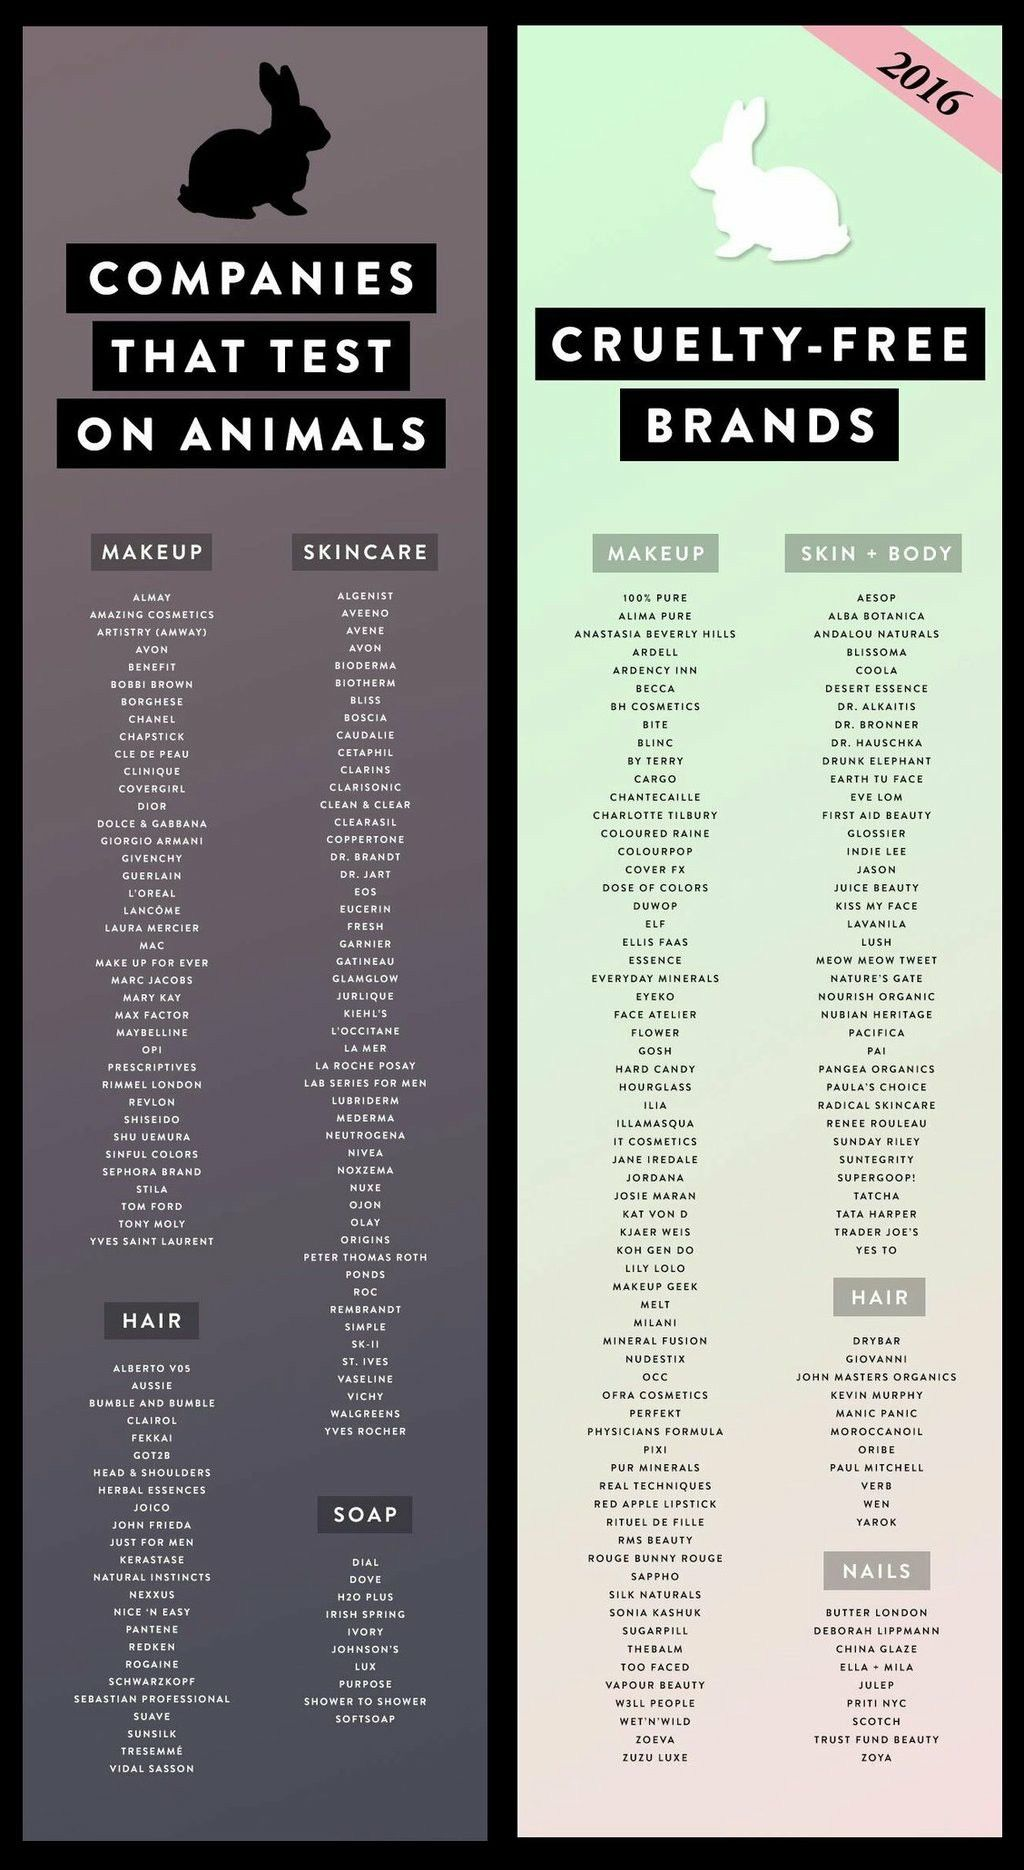 Companies That Test On Animals And Cruelty Free Brands For Makeup And Skincare Free Beauty Products Cruelty Free Makeup Cruelty Free Brands